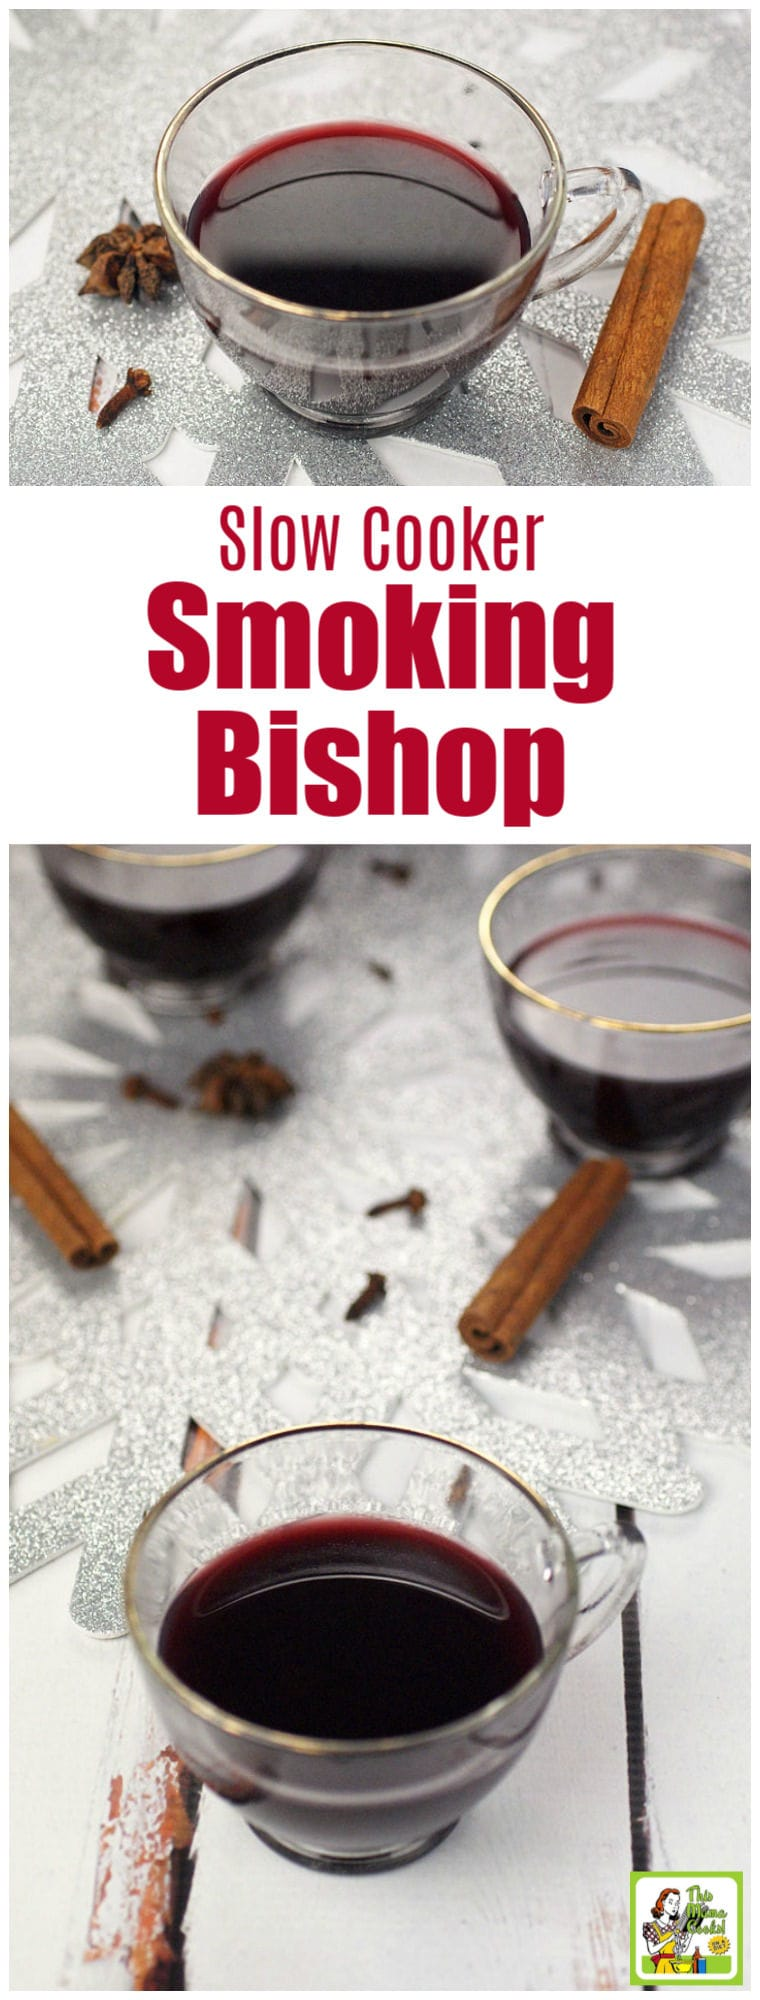 Slow Cooker Smoking Bishop Recipe